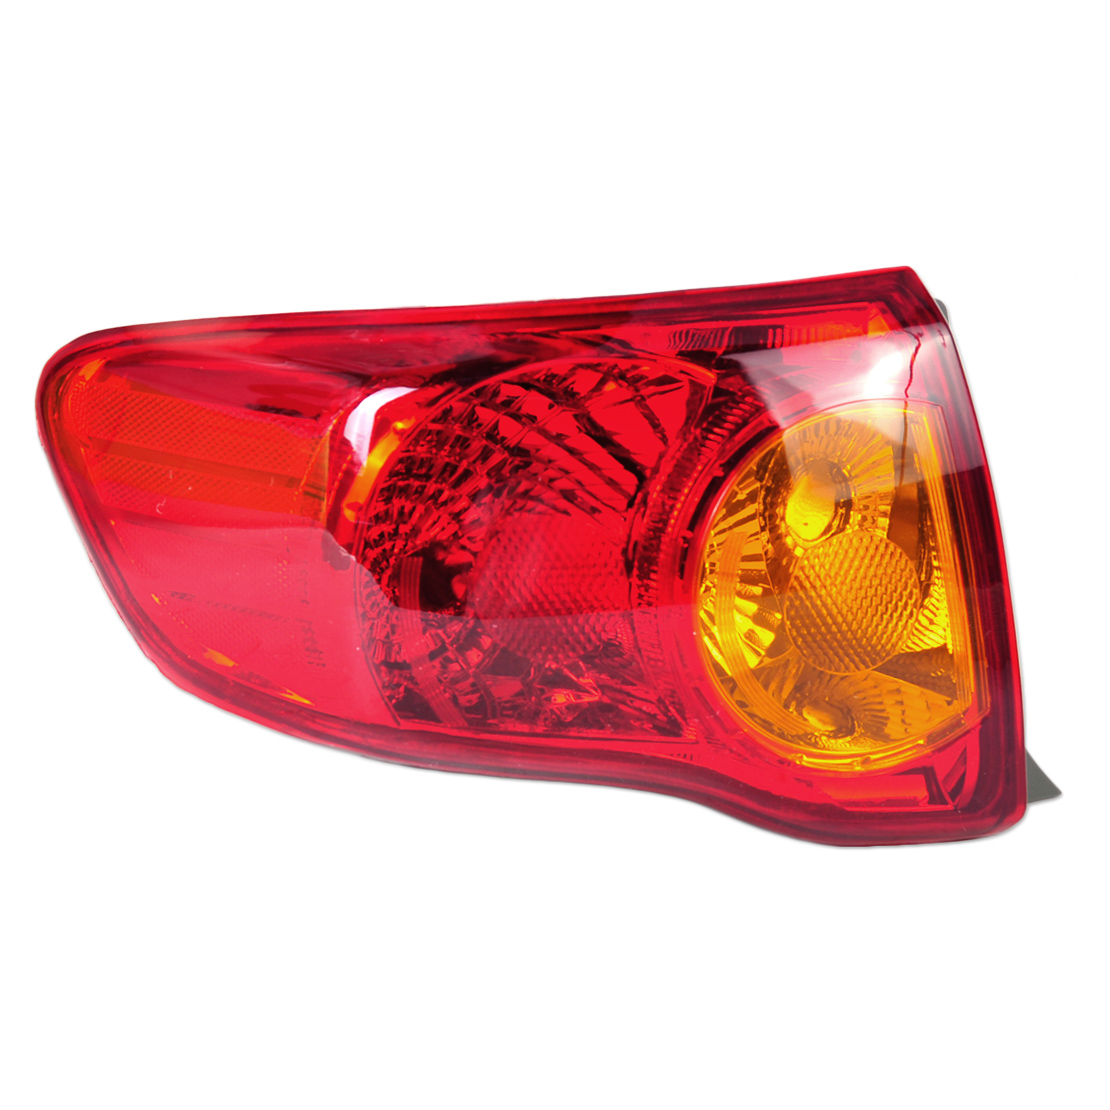 beler LHD Rear Left Outer Tail Light Taillamp Driver Side Brake Light fit for Toyota Corolla 2009 2010 TO2800175 166-50863L for vw passat b6 2006 2007 2008 2009 2010 2011 led rear tail light lamp left side outer left hand trafic only 3c5945095f